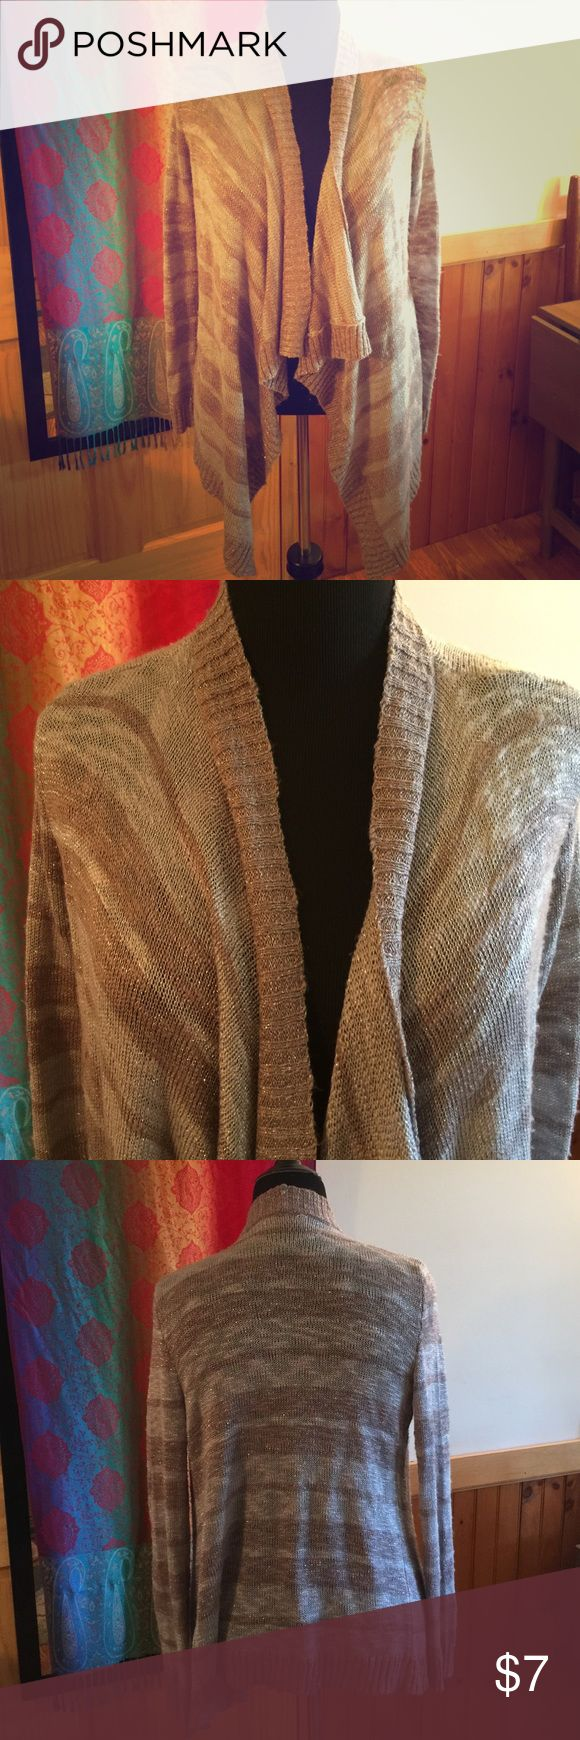 NYE party cardigan! Purple, grey, silver cardigan Gently loved; run in the right sleeve see photos Sweaters Cardigans